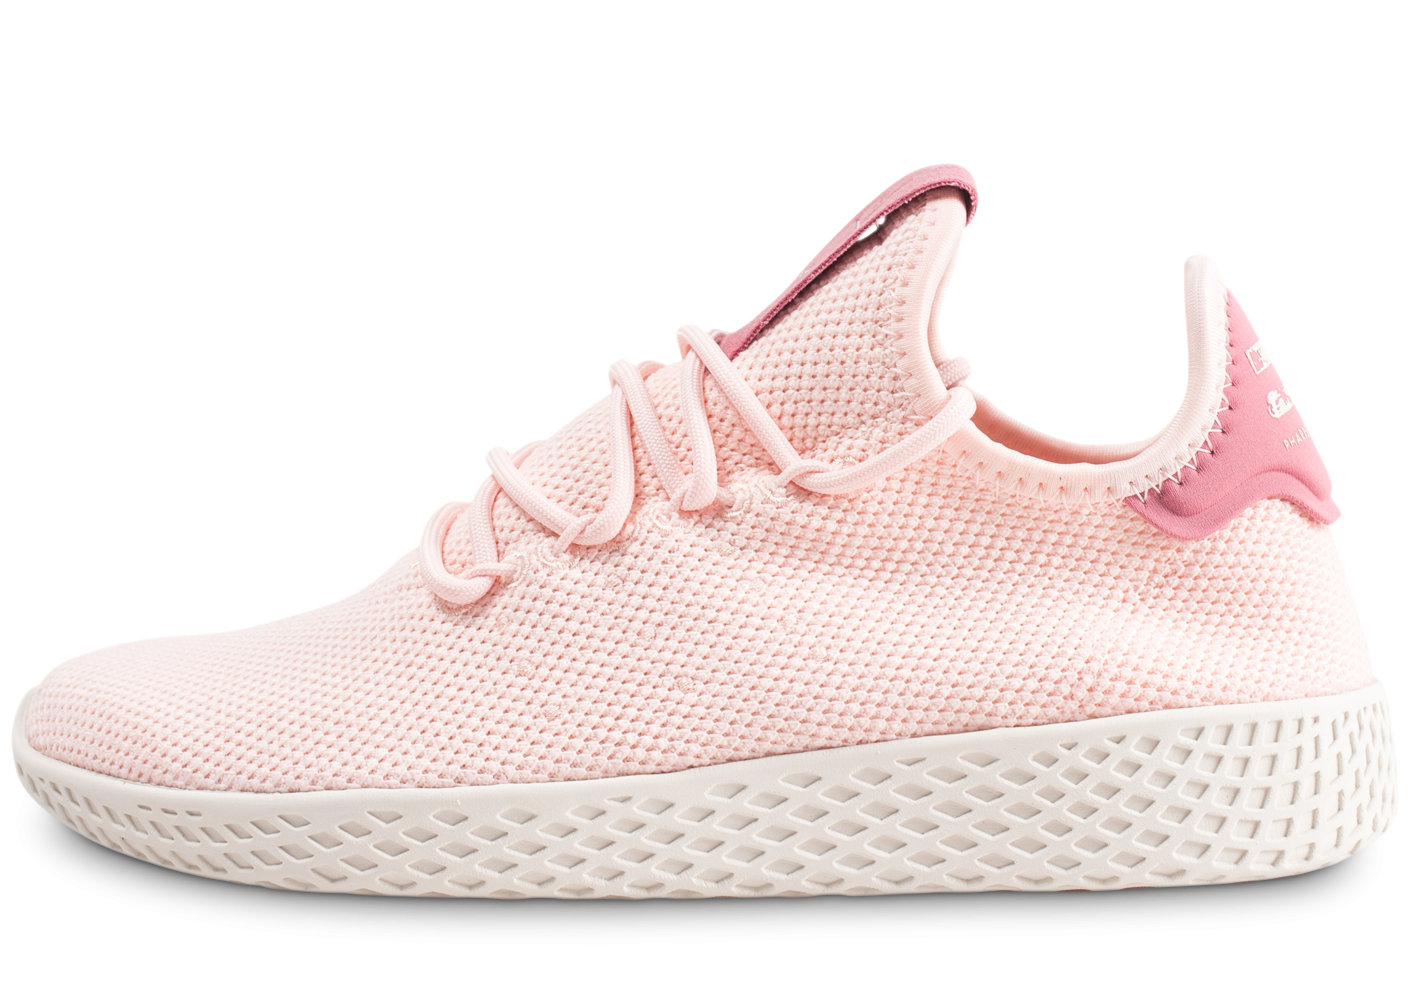 adidas Pharrell Williams Tennis Hu rose femme